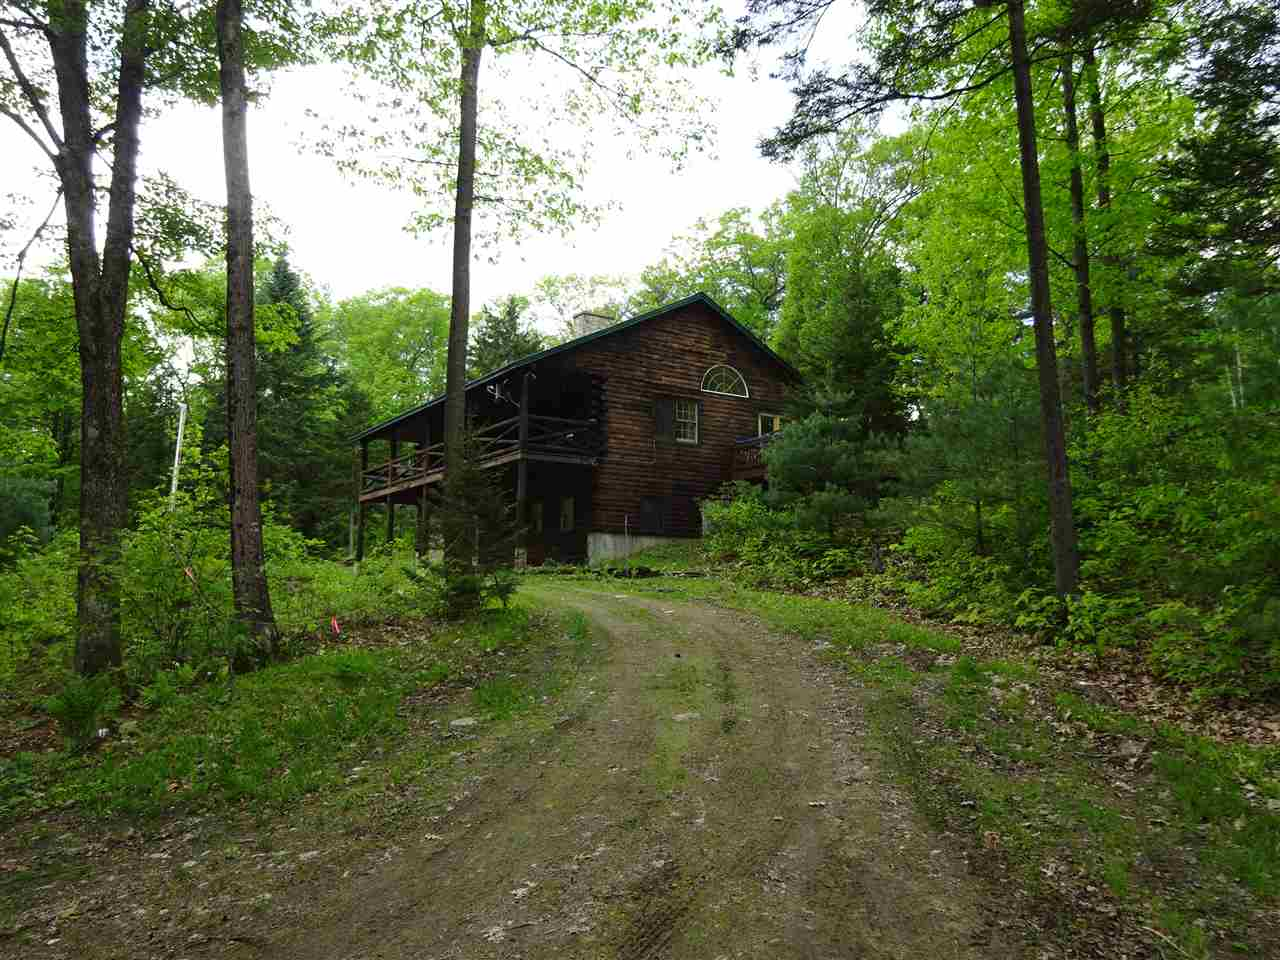 Very comfortable and well maintained 'like new' log home. 3 bedroom 2 bath. Lots of light. Fieldstone Fireplace in the living room.Hardwood floors throughout.Woodstove in the basement. Walkout basement has 9' ceilings & would finish nicely, or make a great shop or exercise area. 4 season recreation area. Miles of trails.Close to skiing. Nice.